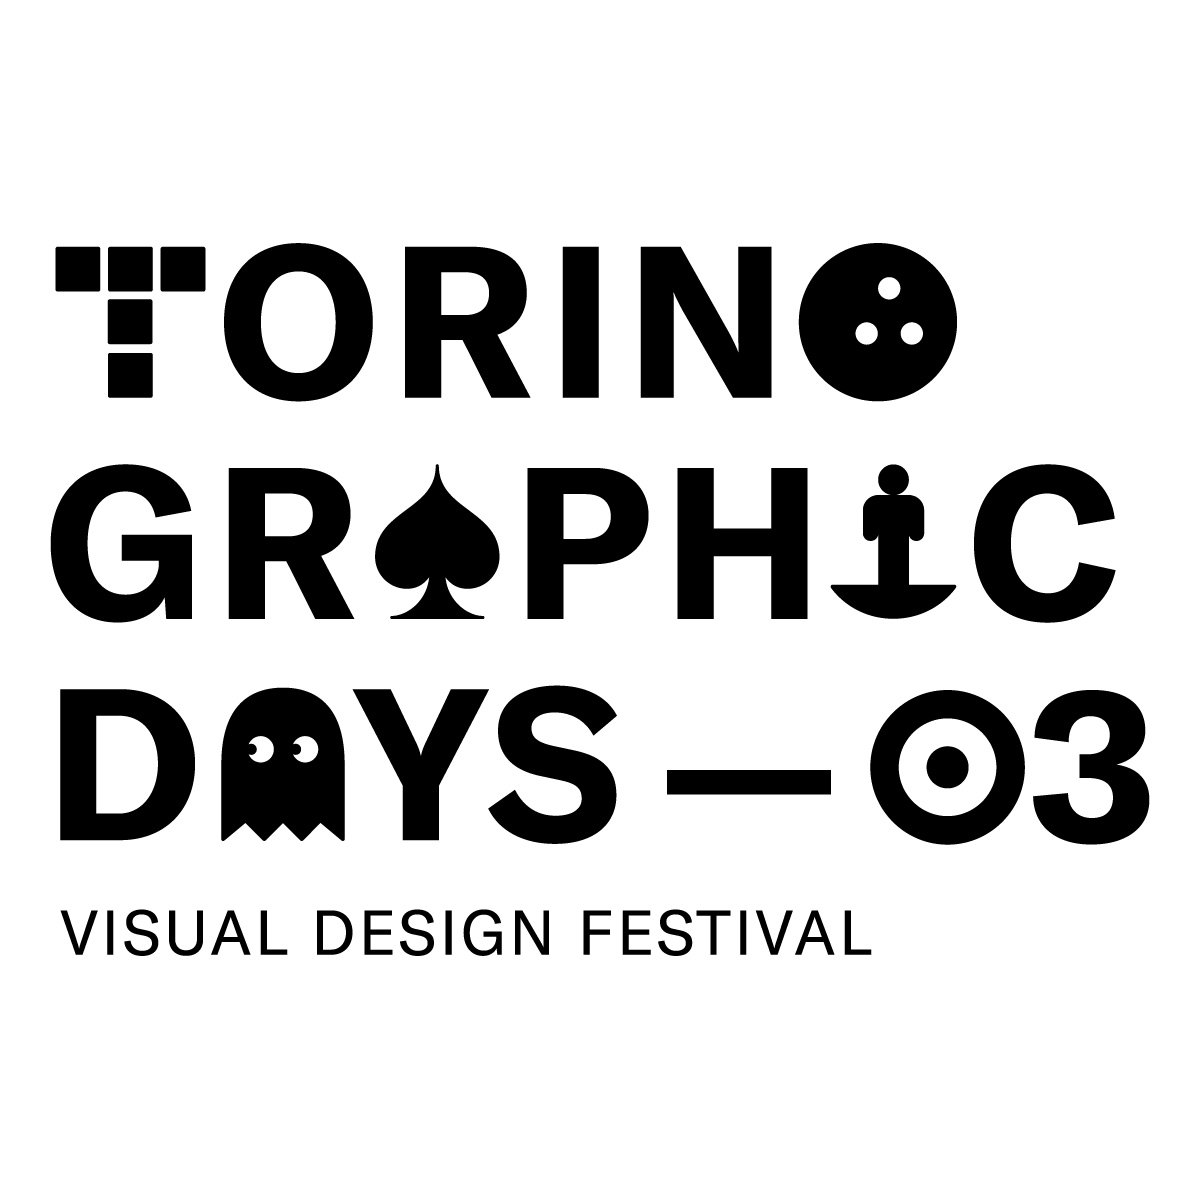 Torino Graphic Days 3